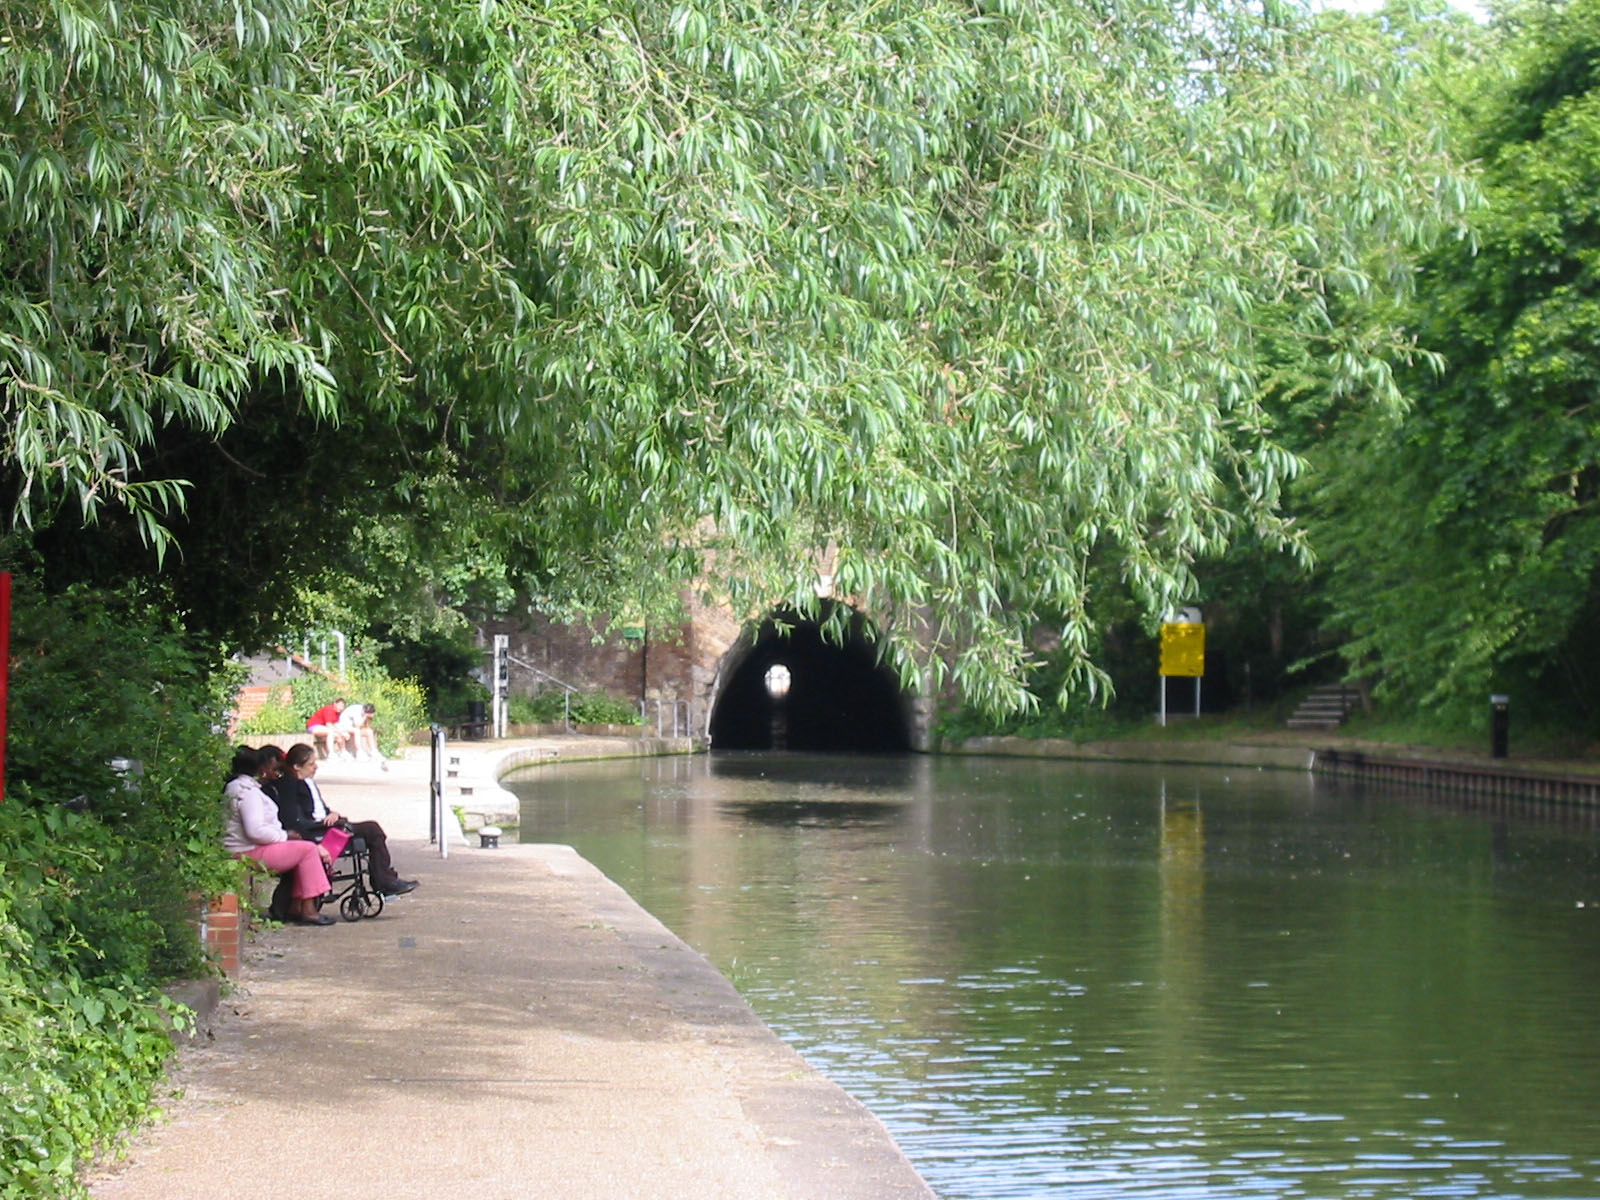 The Islington tunnel.